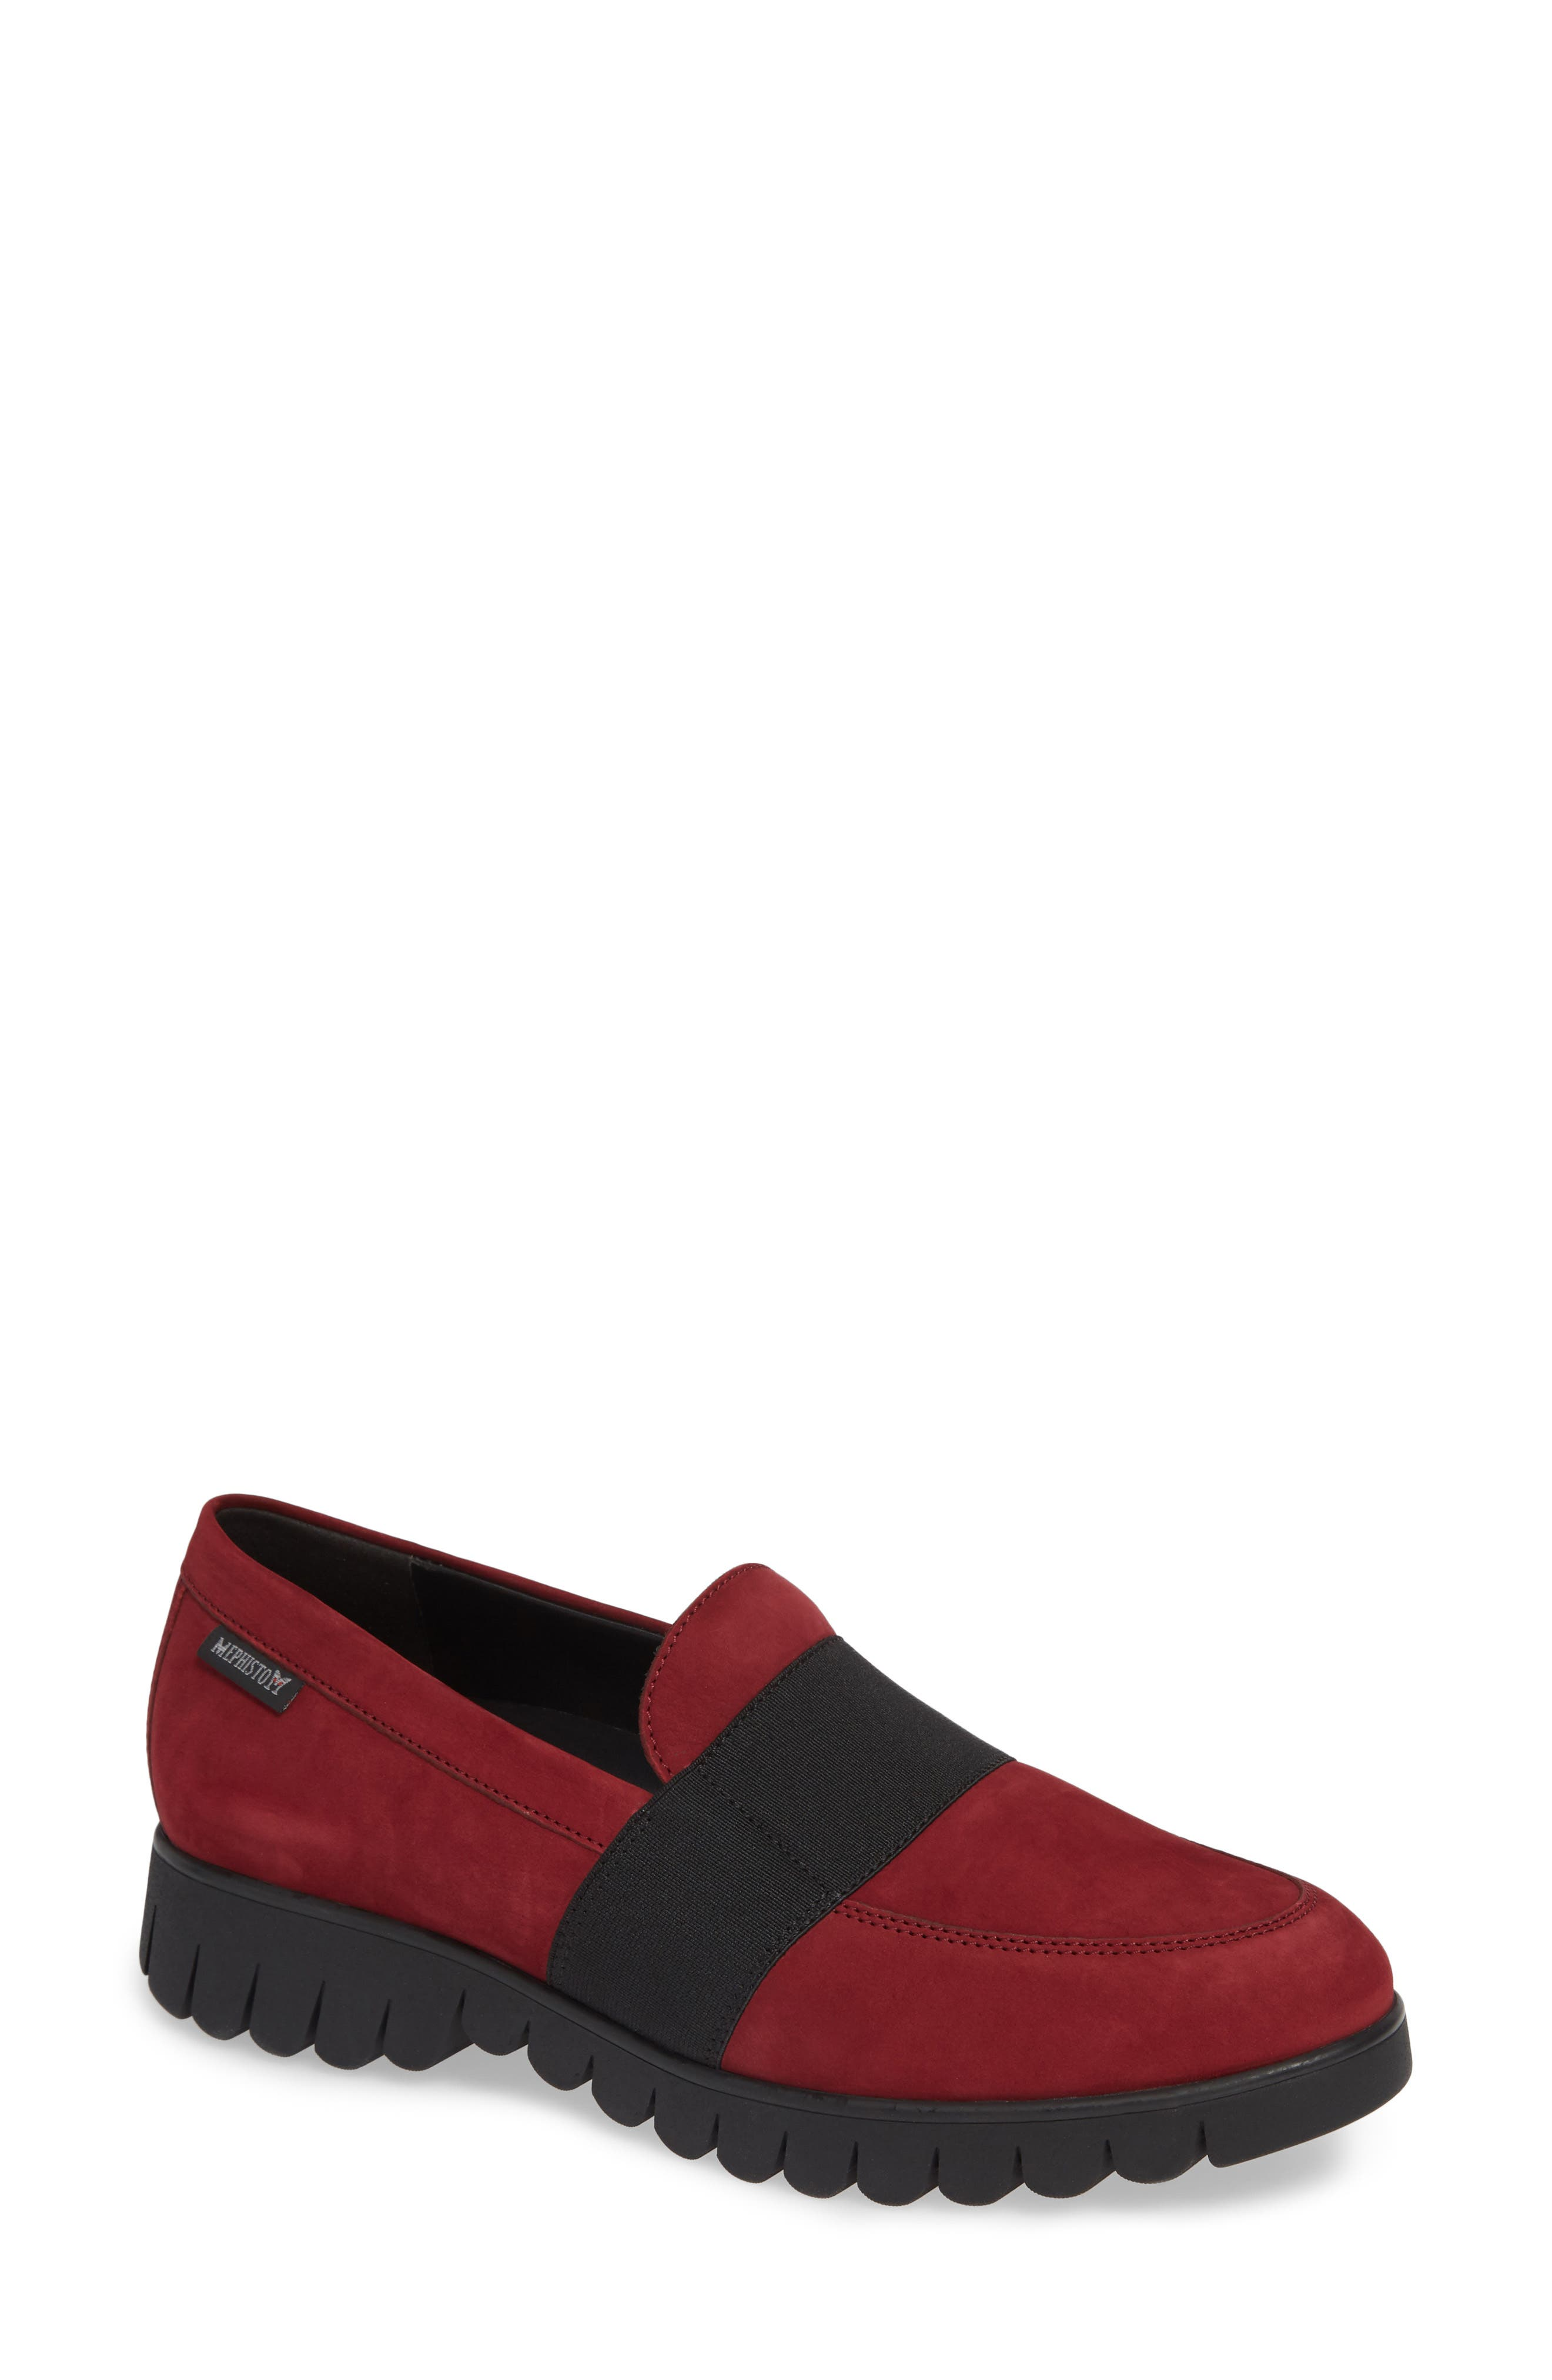 Mephisto Loriane Loafer, Red